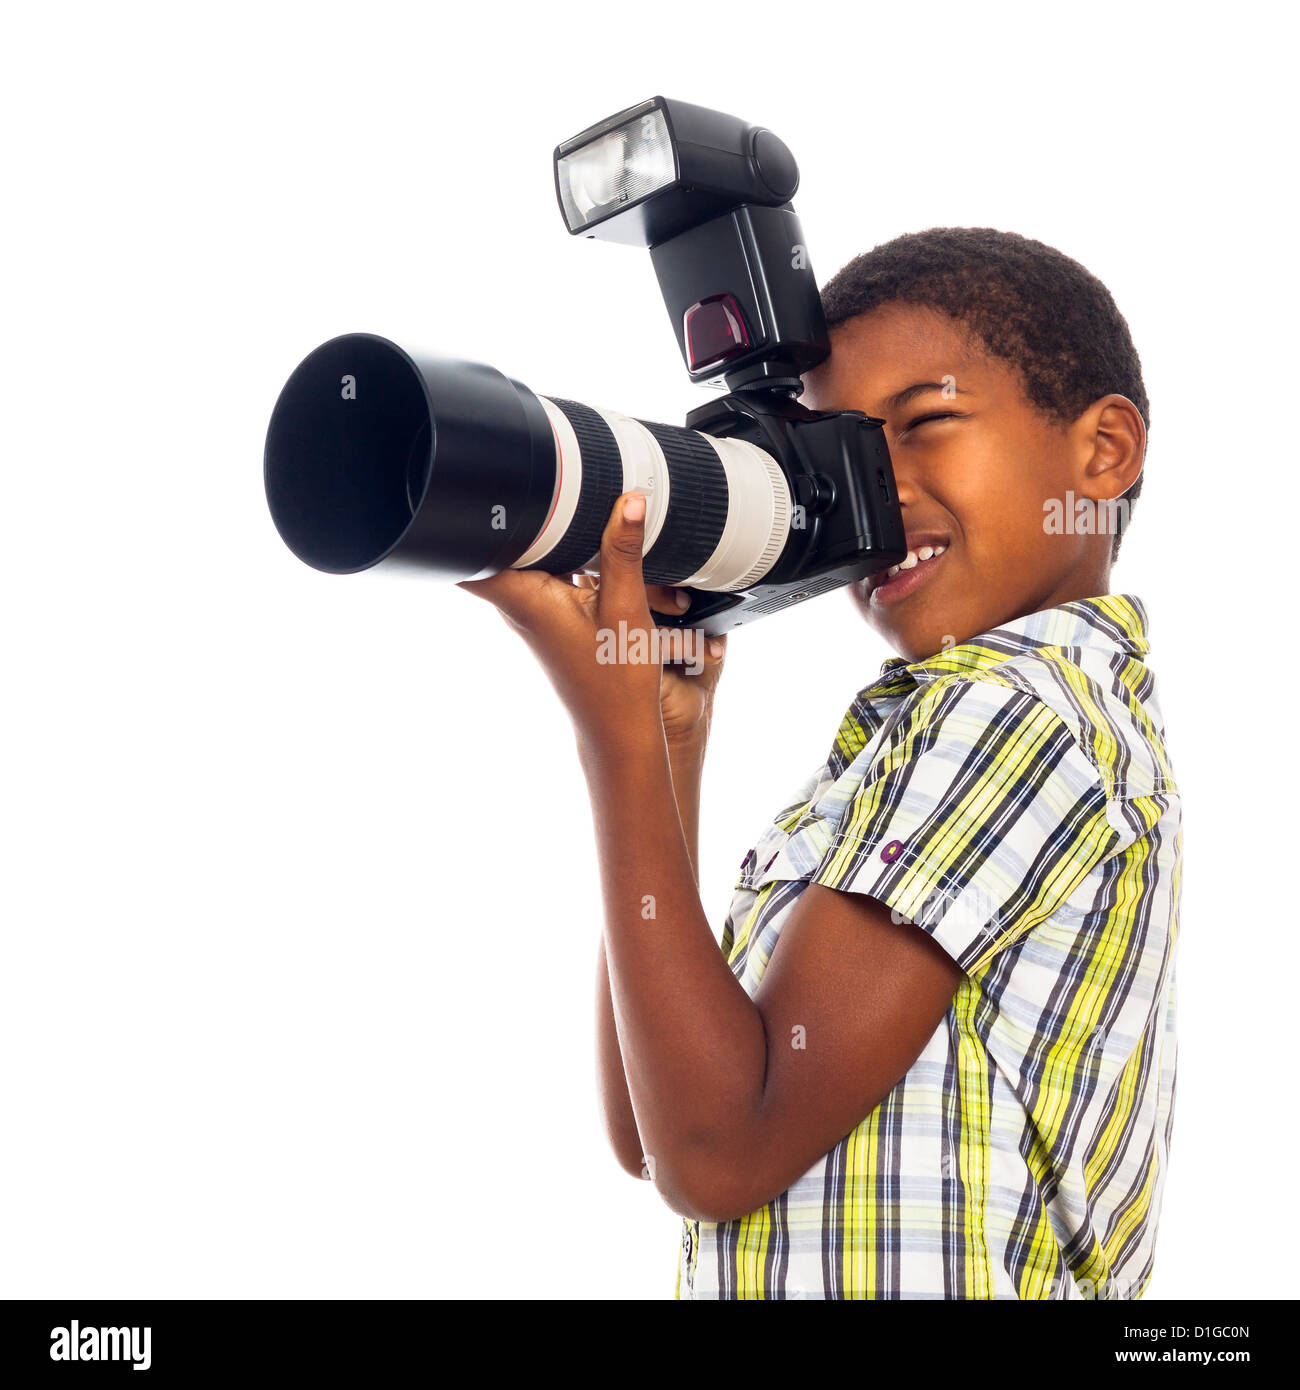 Child school boy taking photos with professional camera, isolated on white background. - Stock Image